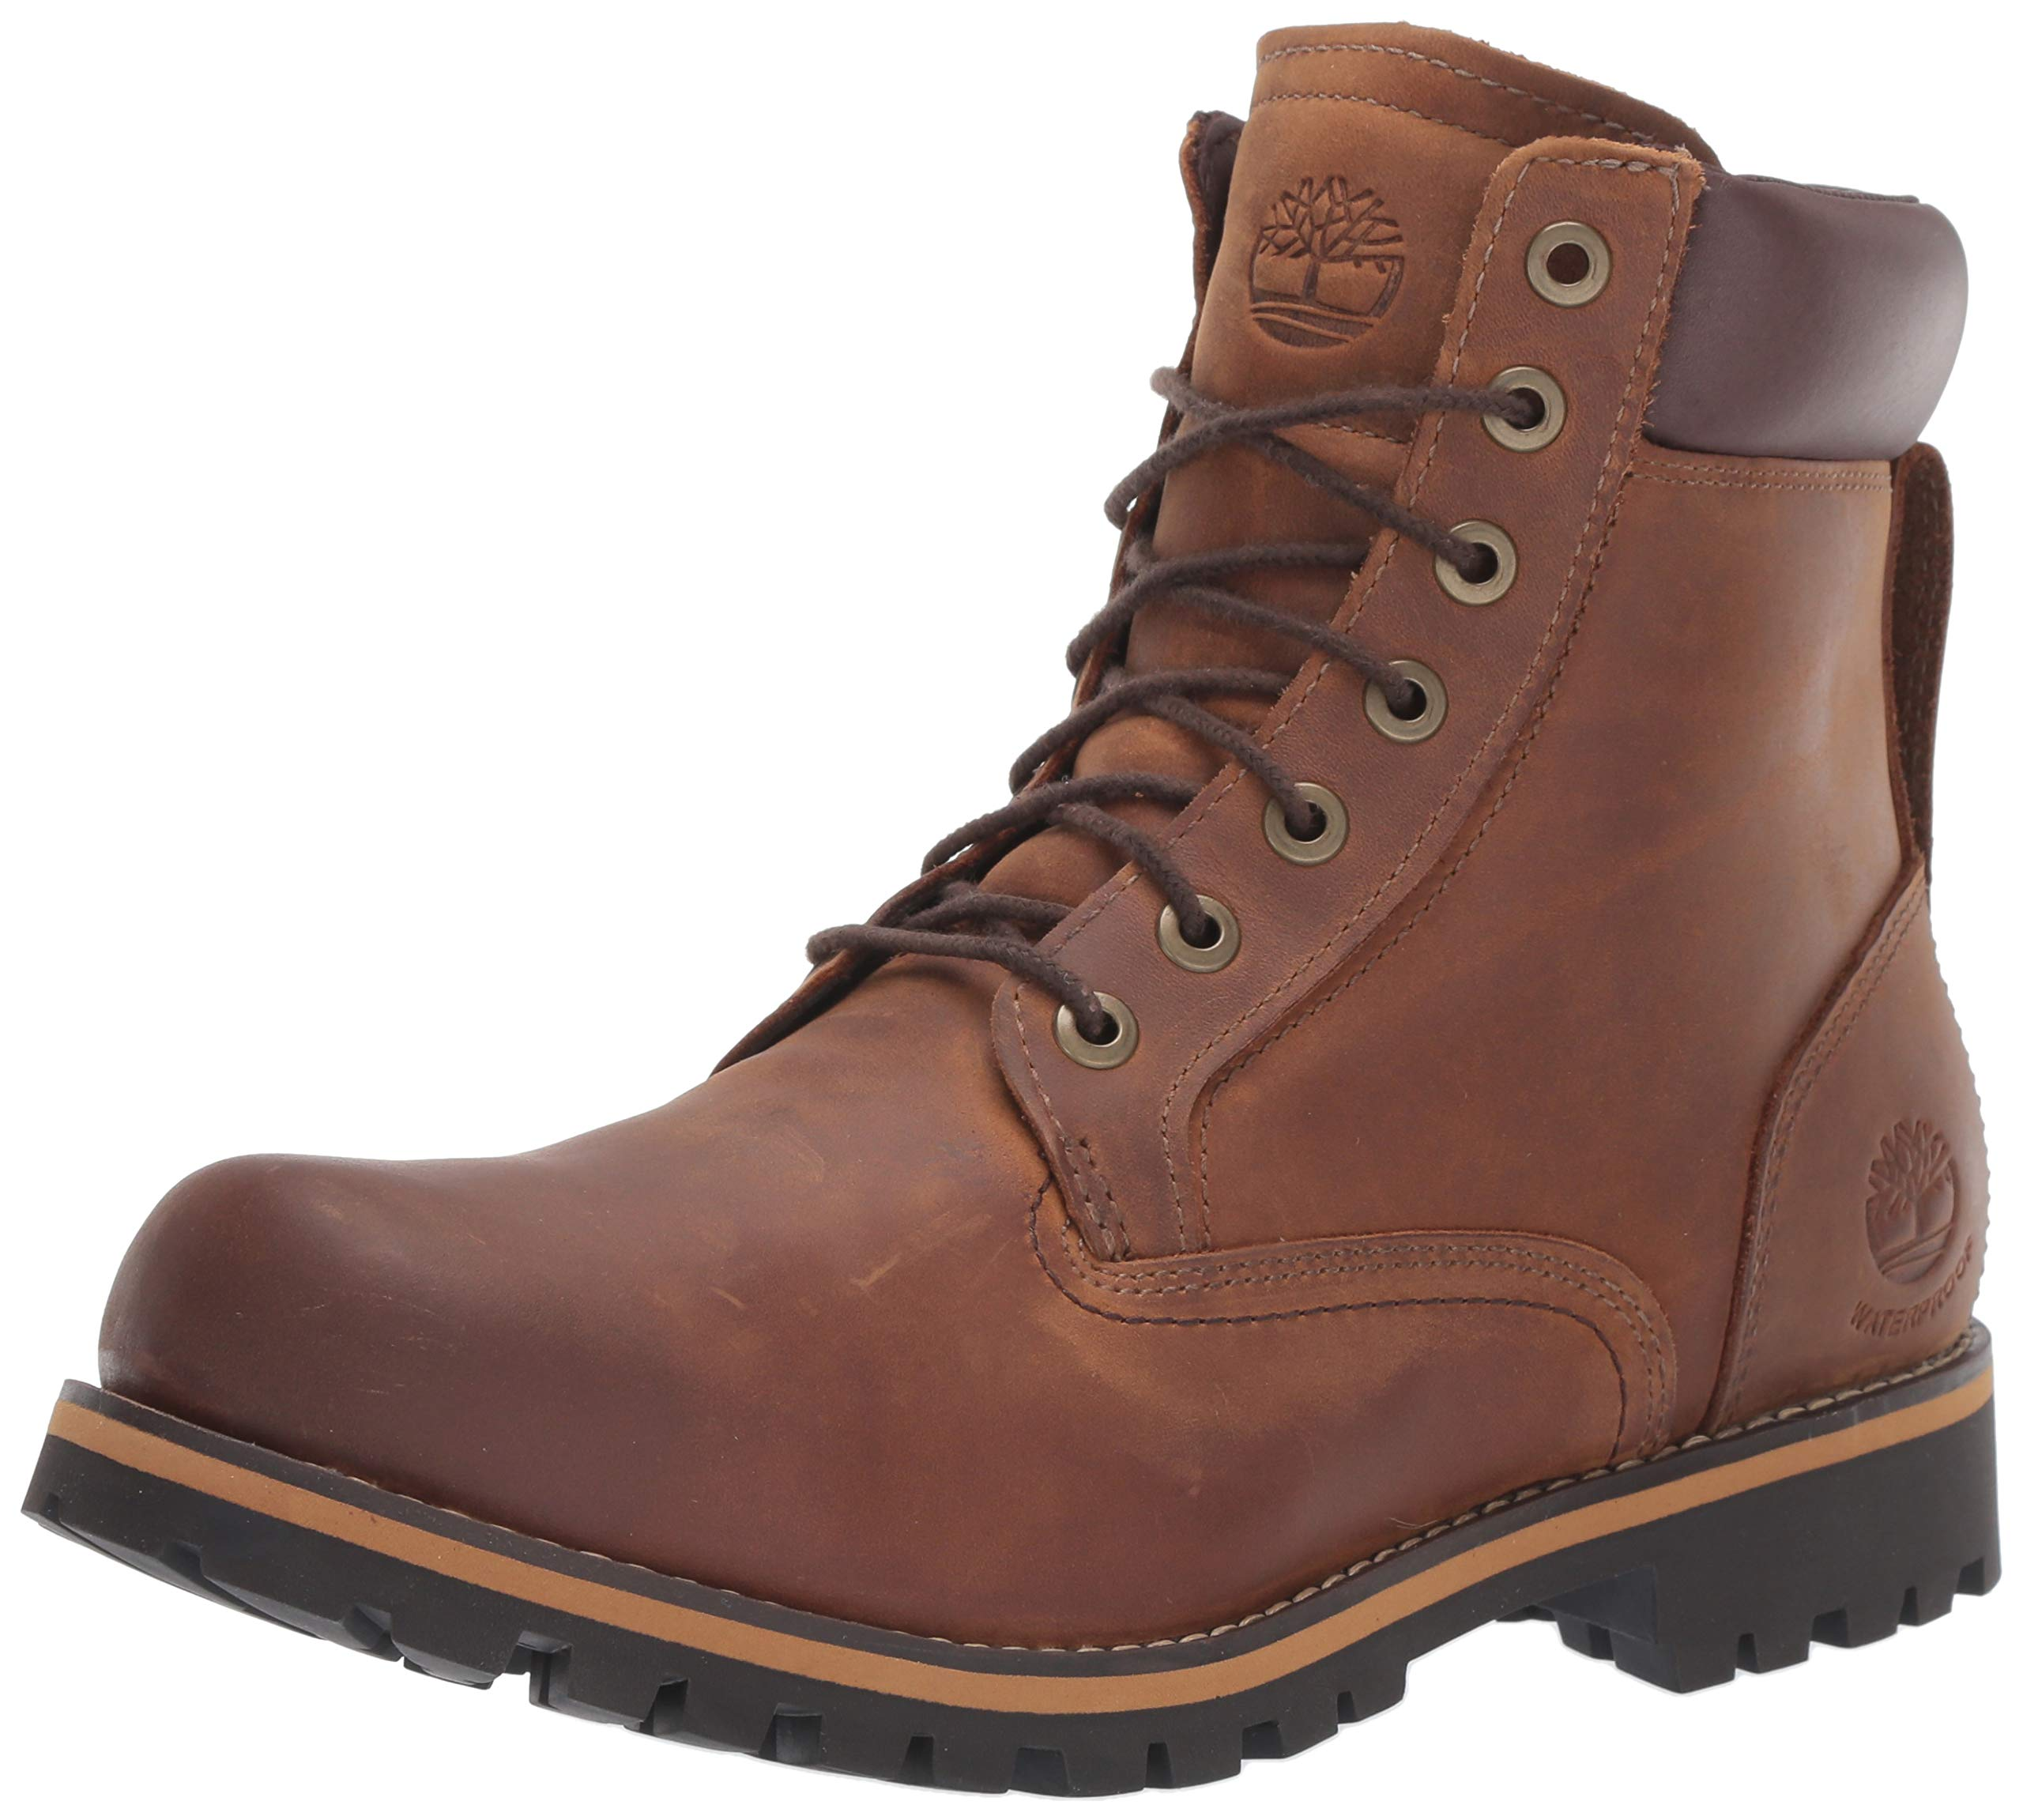 Timberland Men's Earthkeepers Rugged Boot, Medium brown full grain, 7 M US